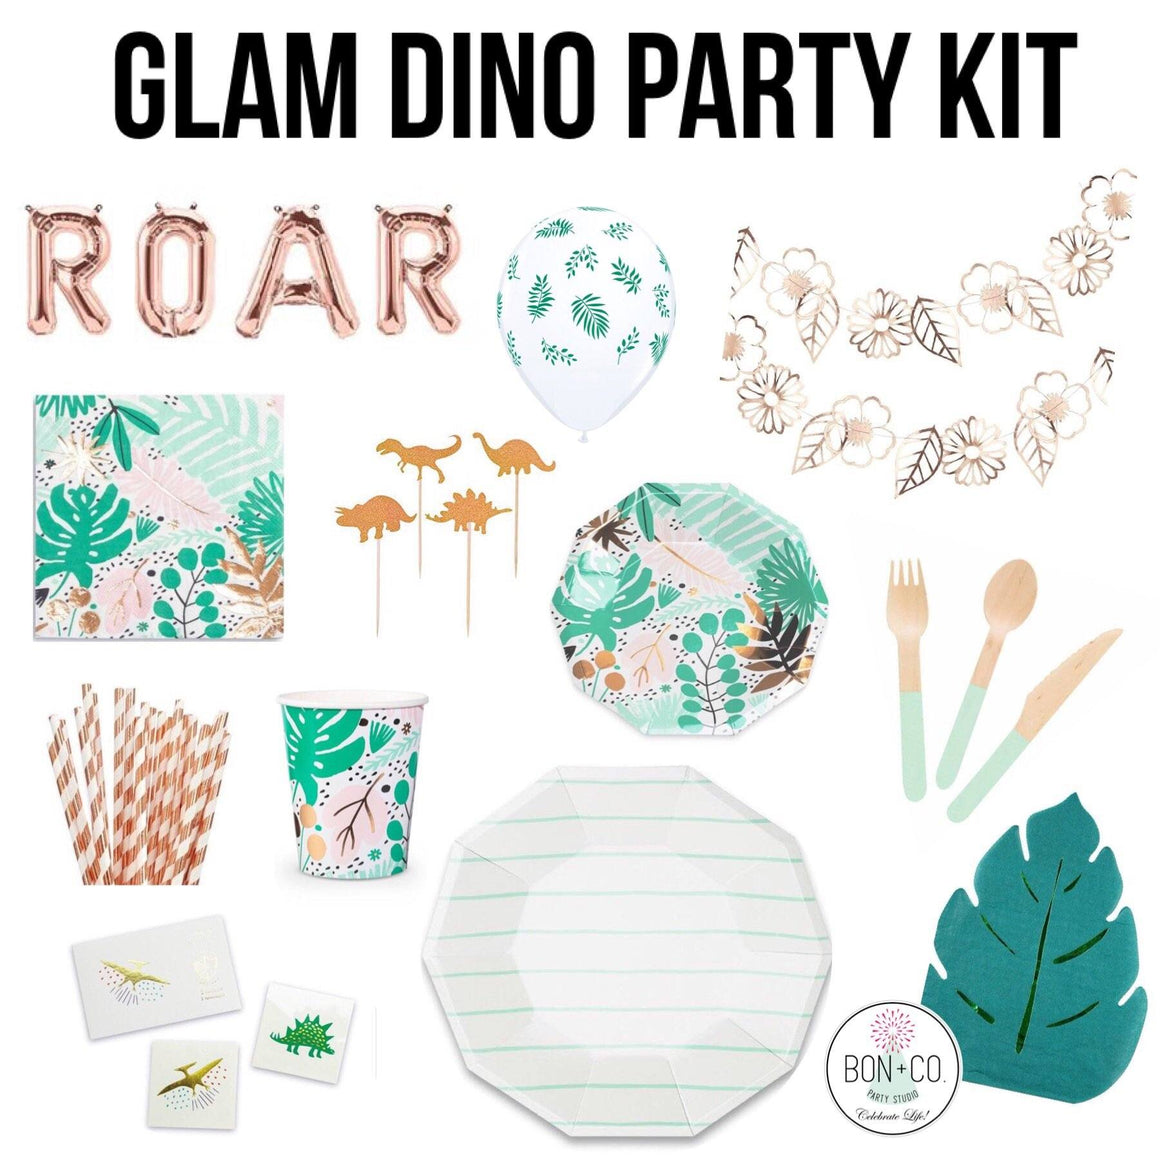 PARTY KIT - GLAM DINO, Party Kit, Bon + Co. Party Studio - Bon + Co. Party Studio